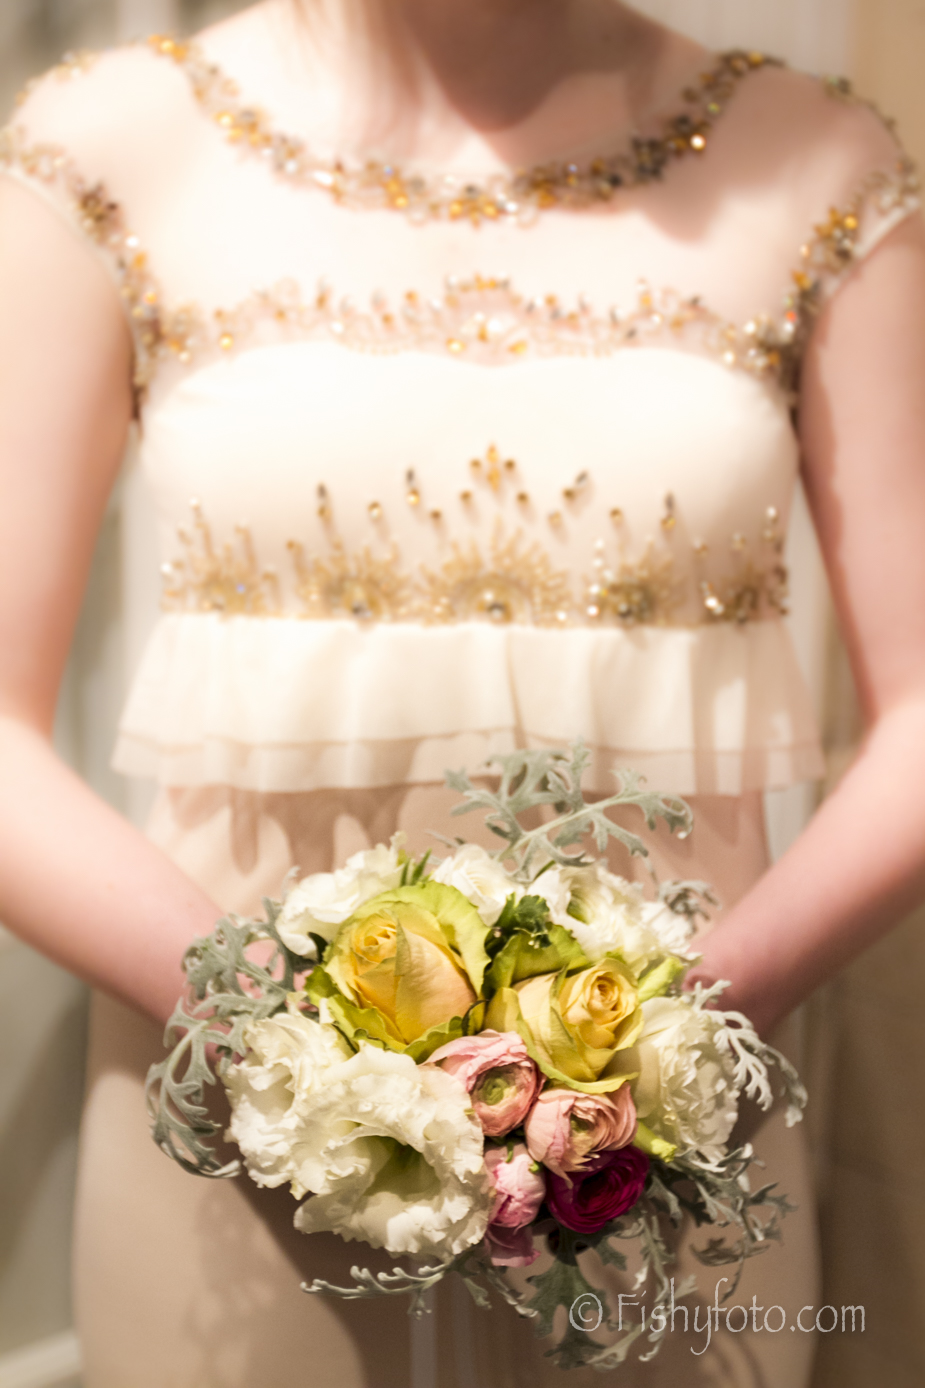 Bridesmaid with Bouquet #fishyfoto